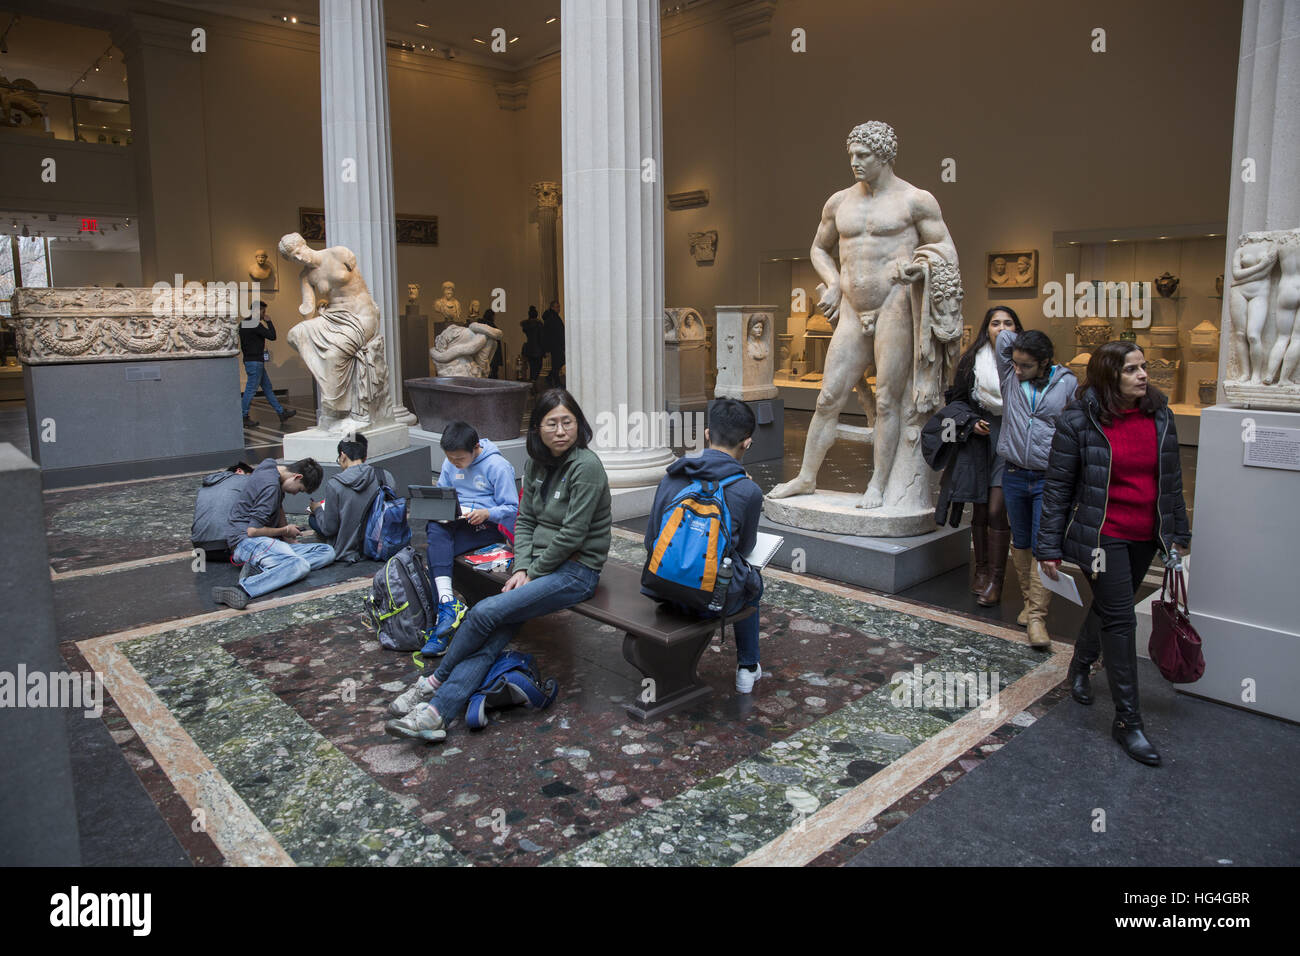 People wander in the Greek and Roman Gallery at the Metropolitan Museum of Art (MET) in New York City. (Youthful Stock Photo